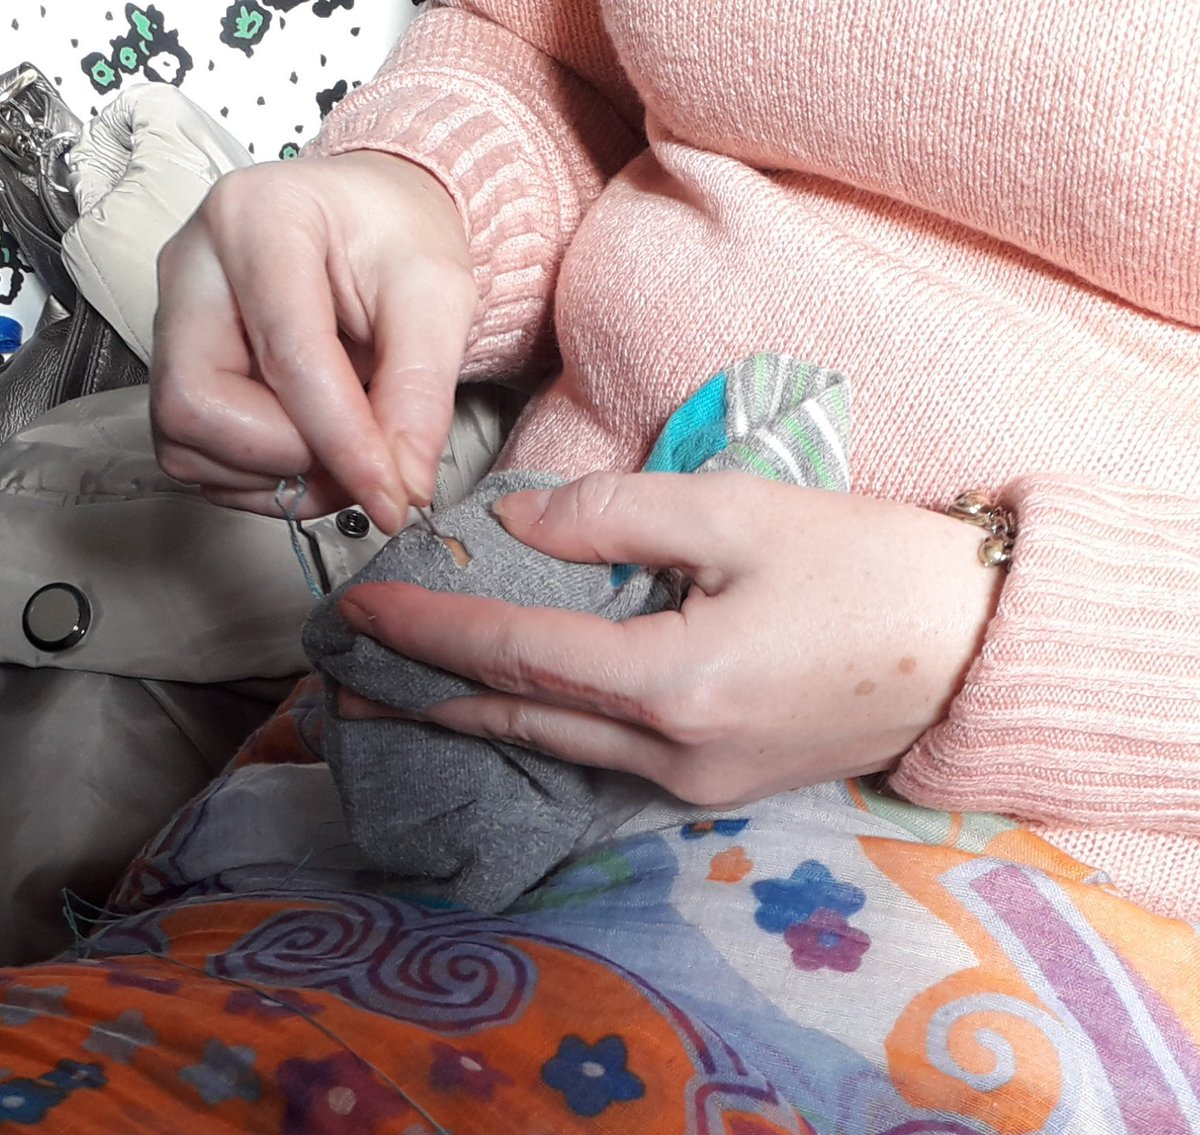 Darning workshop coming up next Thurs 4th. 7-9pm. Dont throw away, mend it.